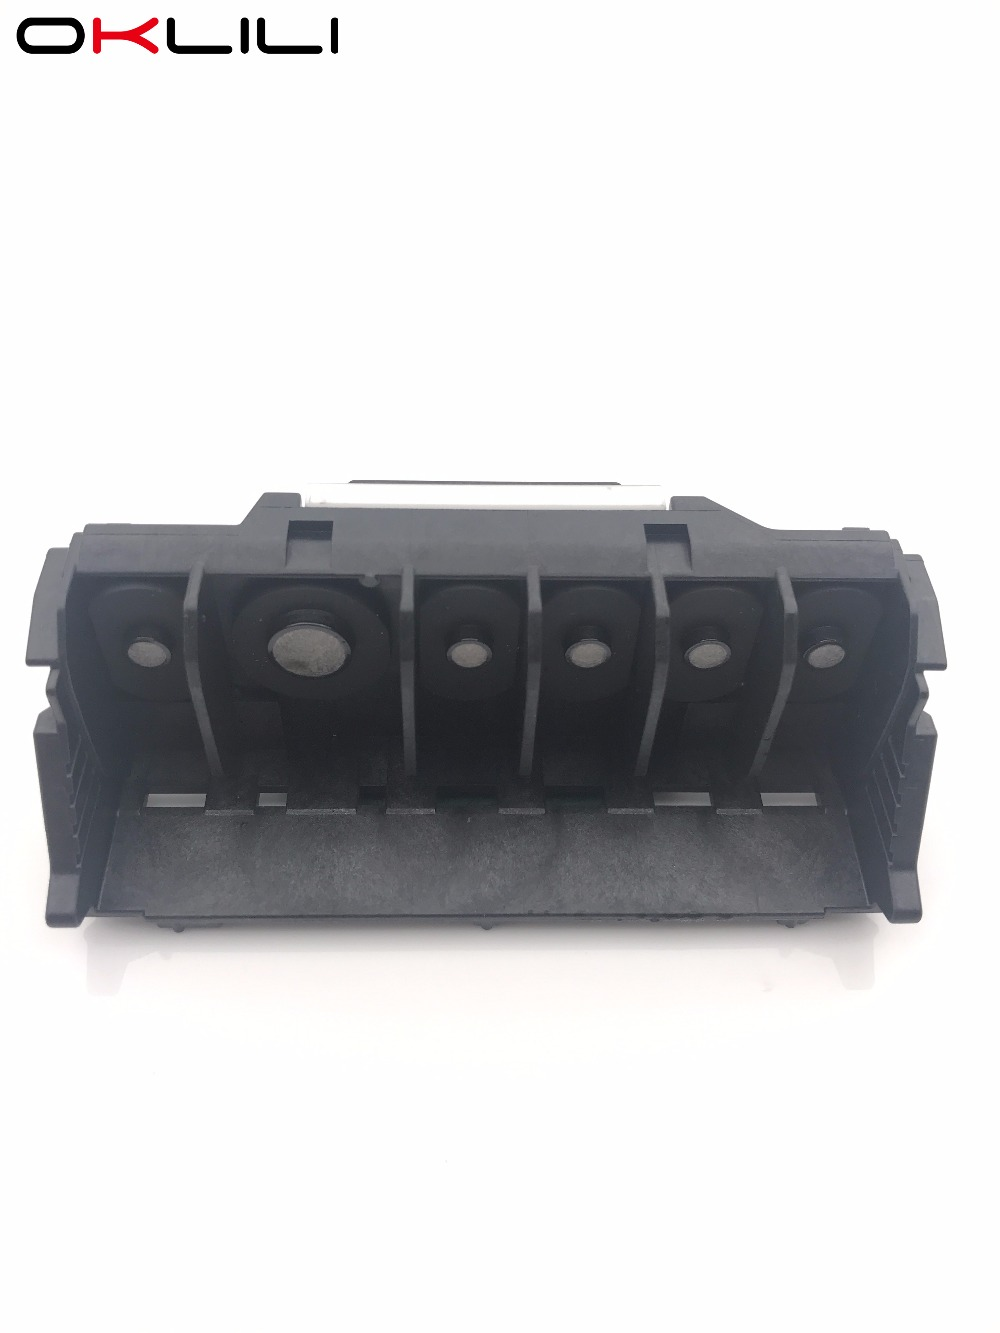 QY6-0090 QY6-0090-000 Printhead Print Head Printer Head for Canon PIXMA TS8040 TS8050 TS8070 TS8080 TS9050 TS9080 genuine brand new qy6 0084 printhead print head for canon pixma pro 100 printer